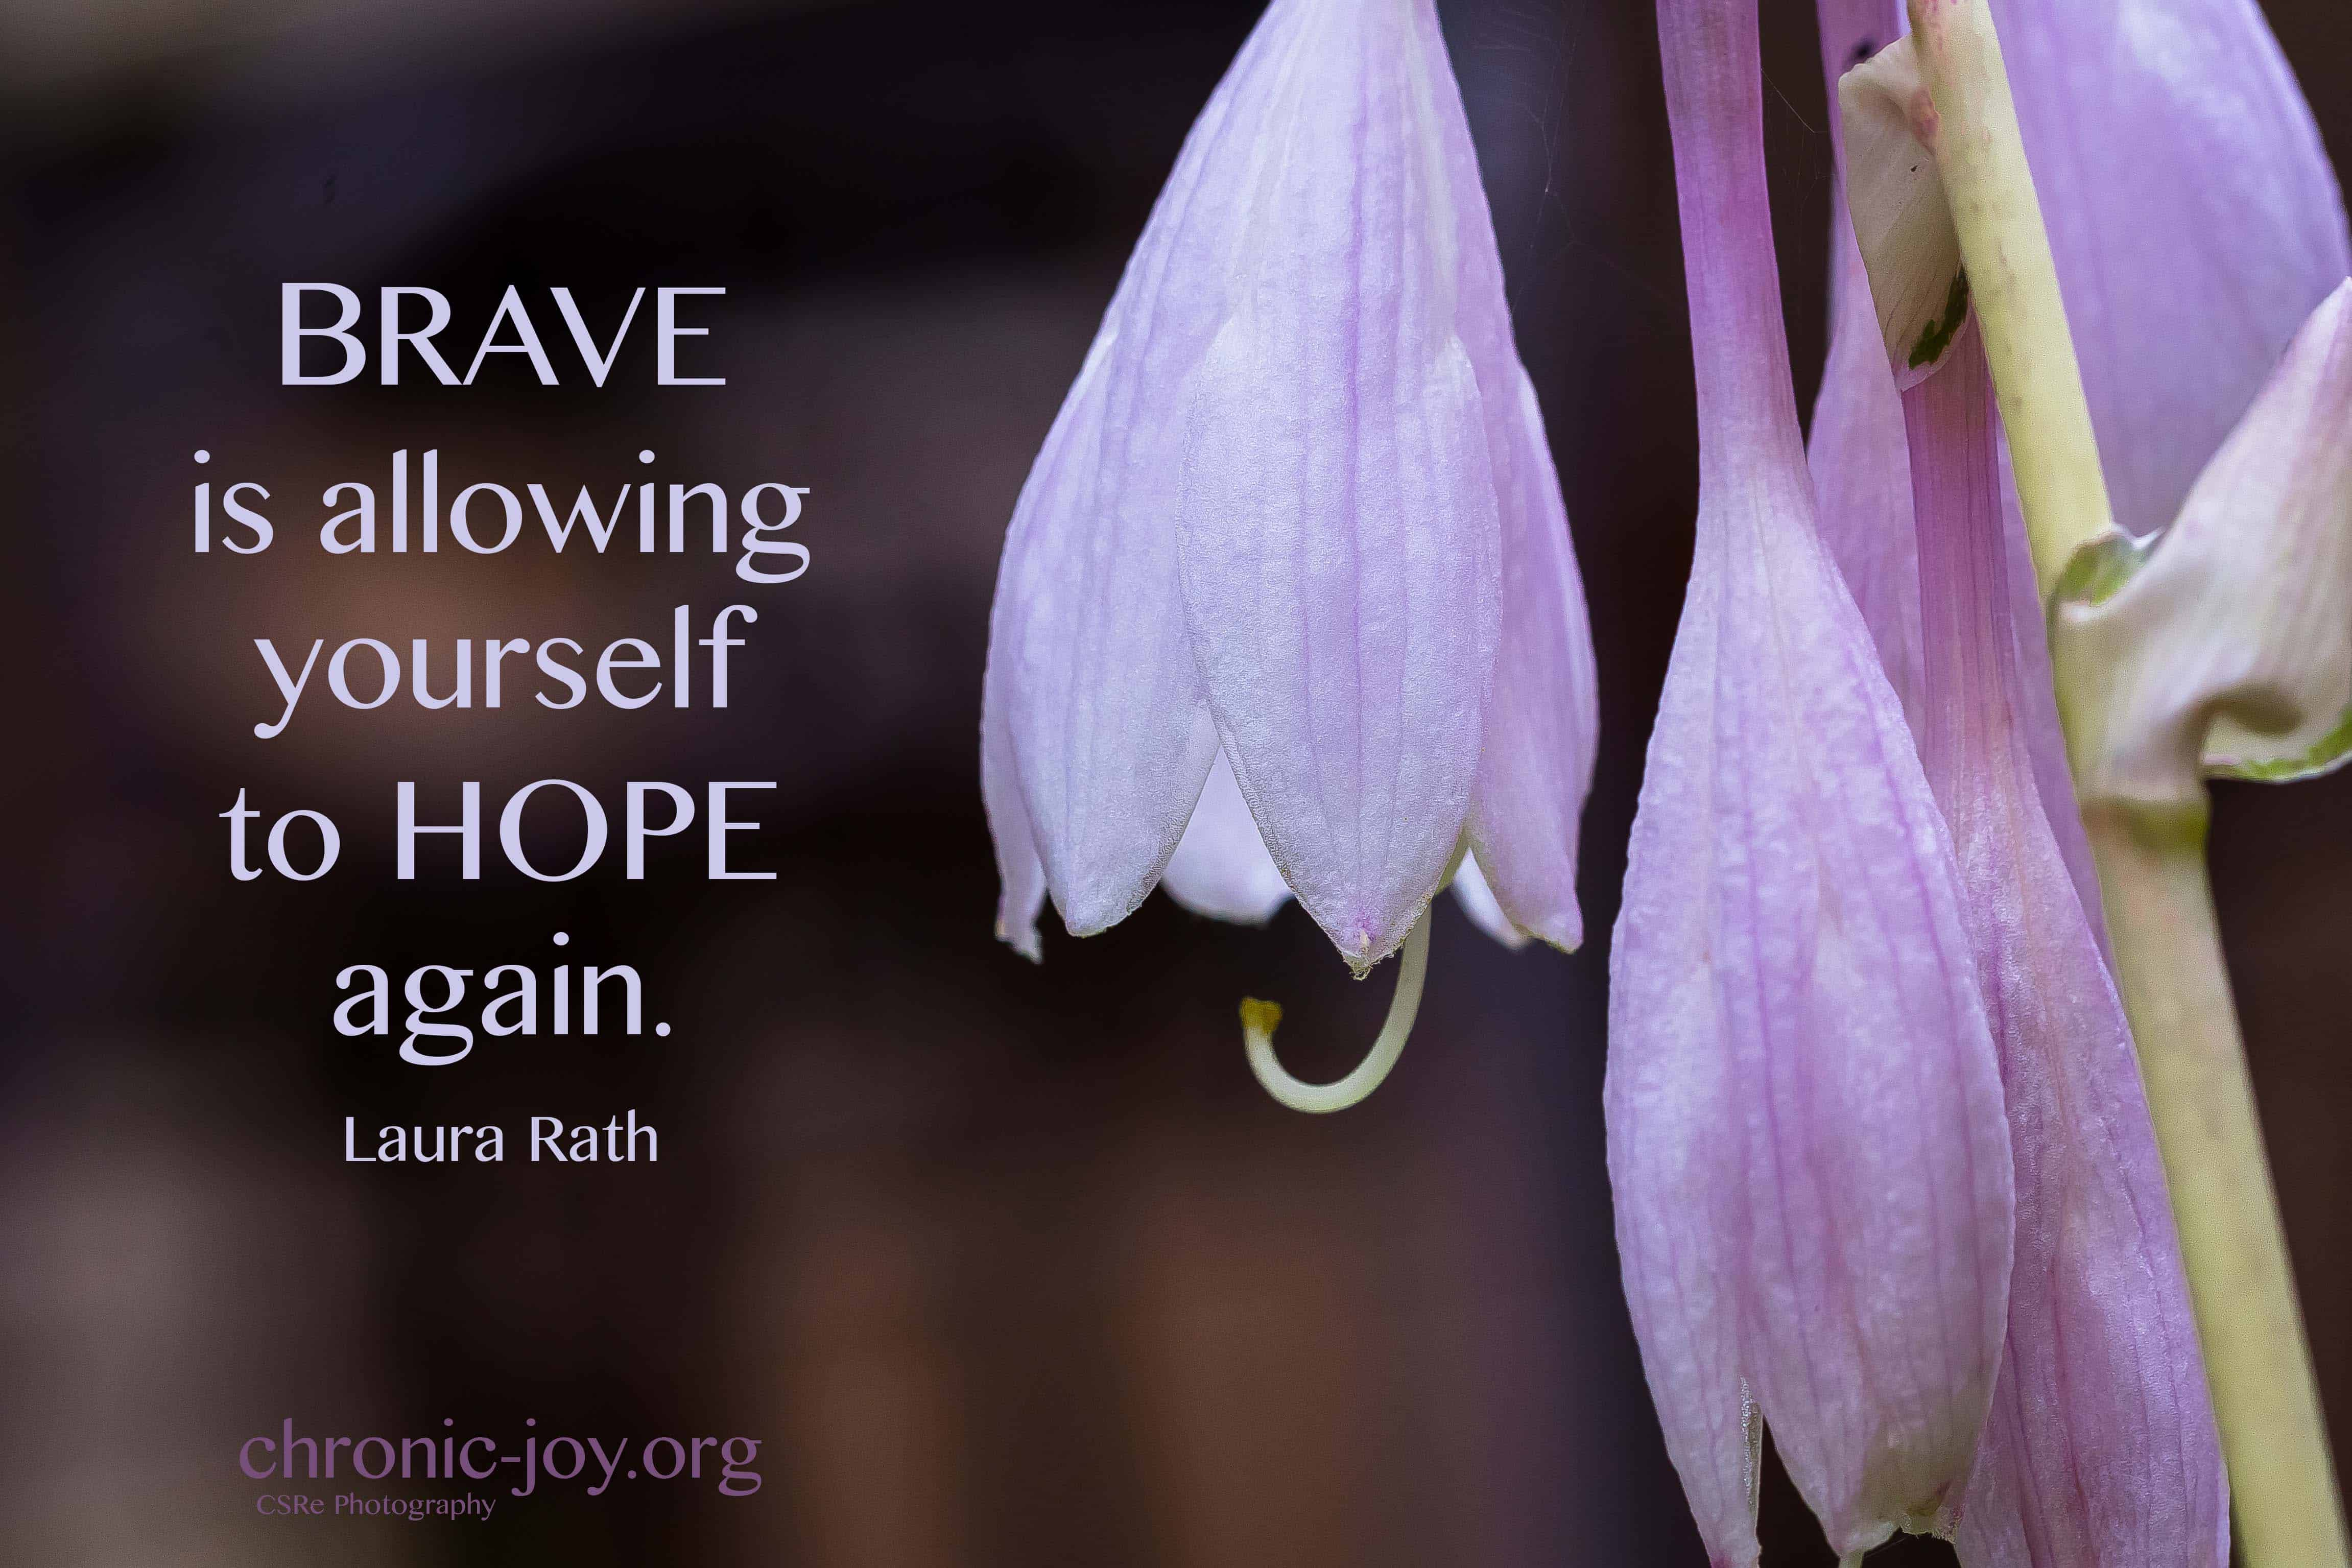 Brave is allowing yourself to hope again.